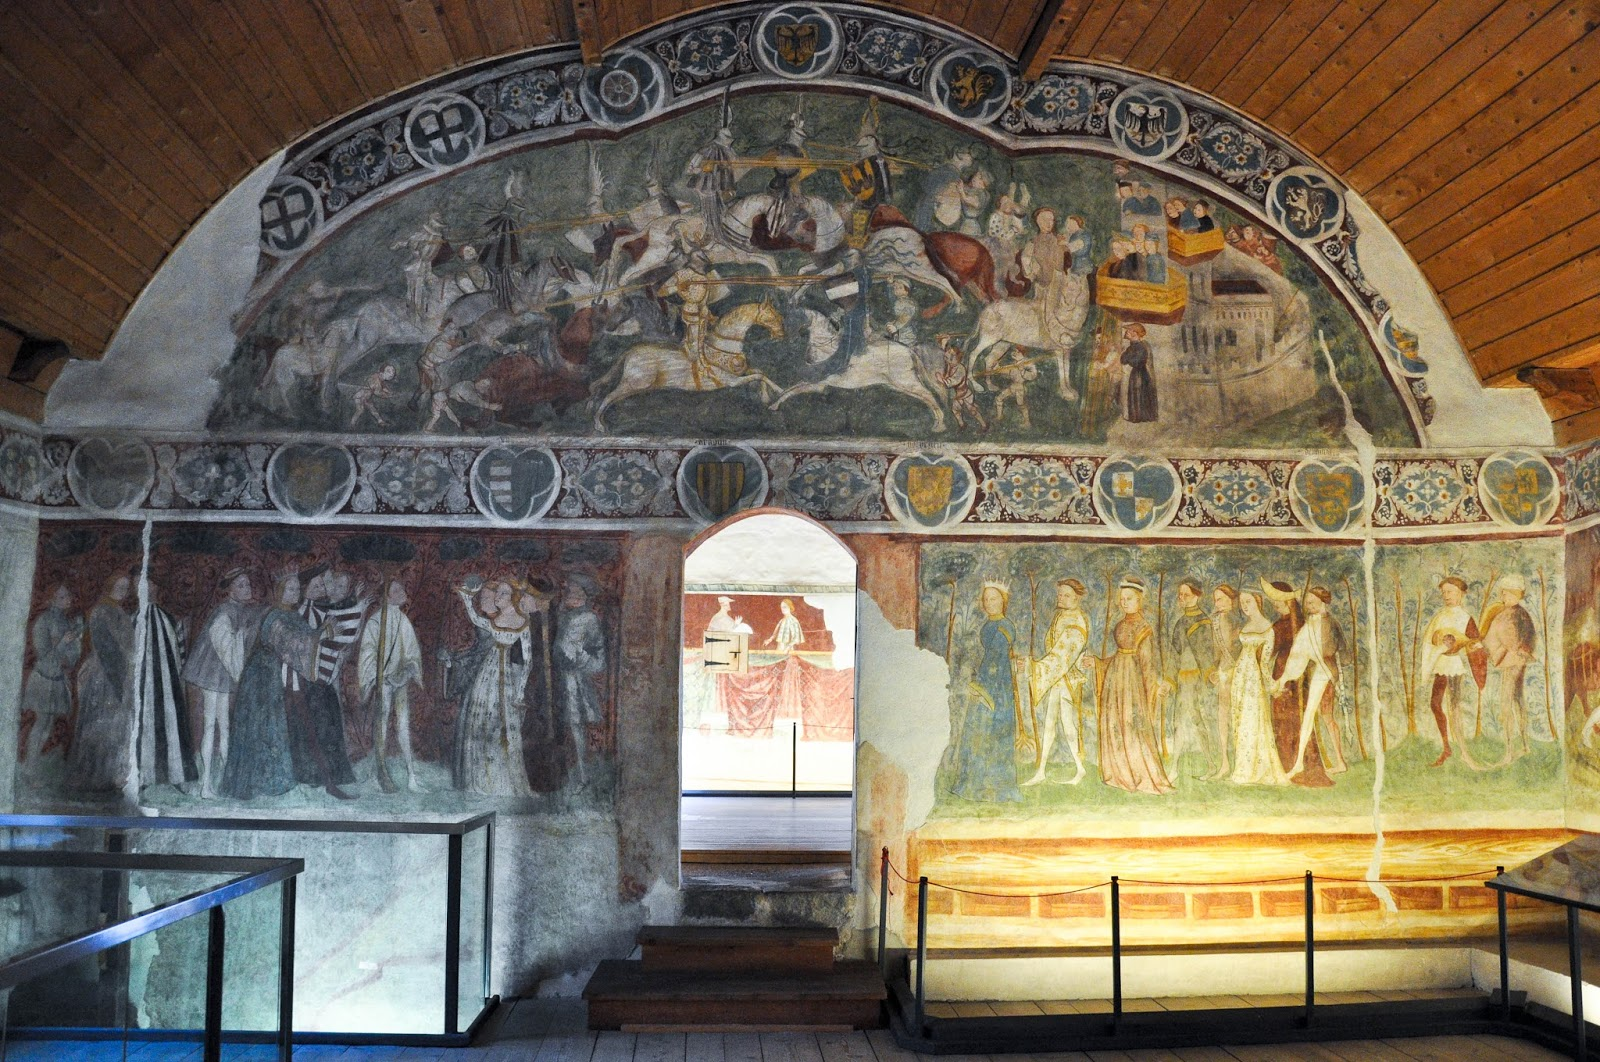 Frescoes in the Room of Love Couples, Runkelstein Castle, Bolzano, South Tyrol, Italy